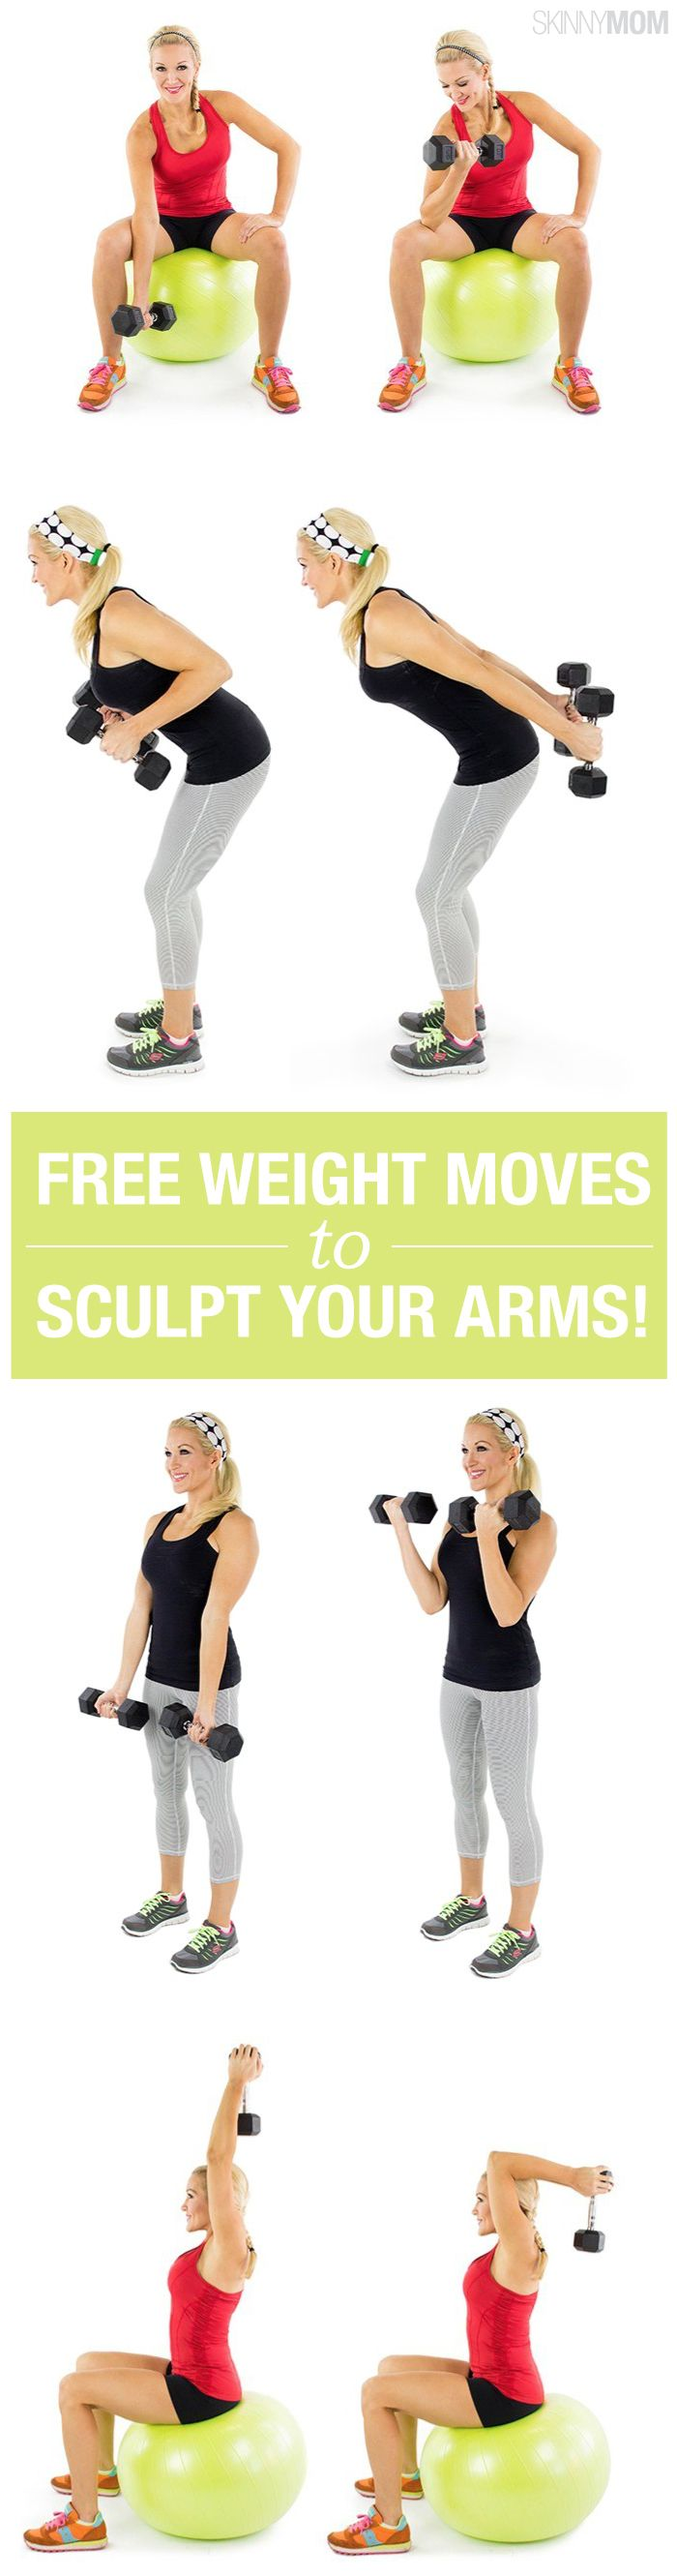 Tone your arms in just 17 moves!